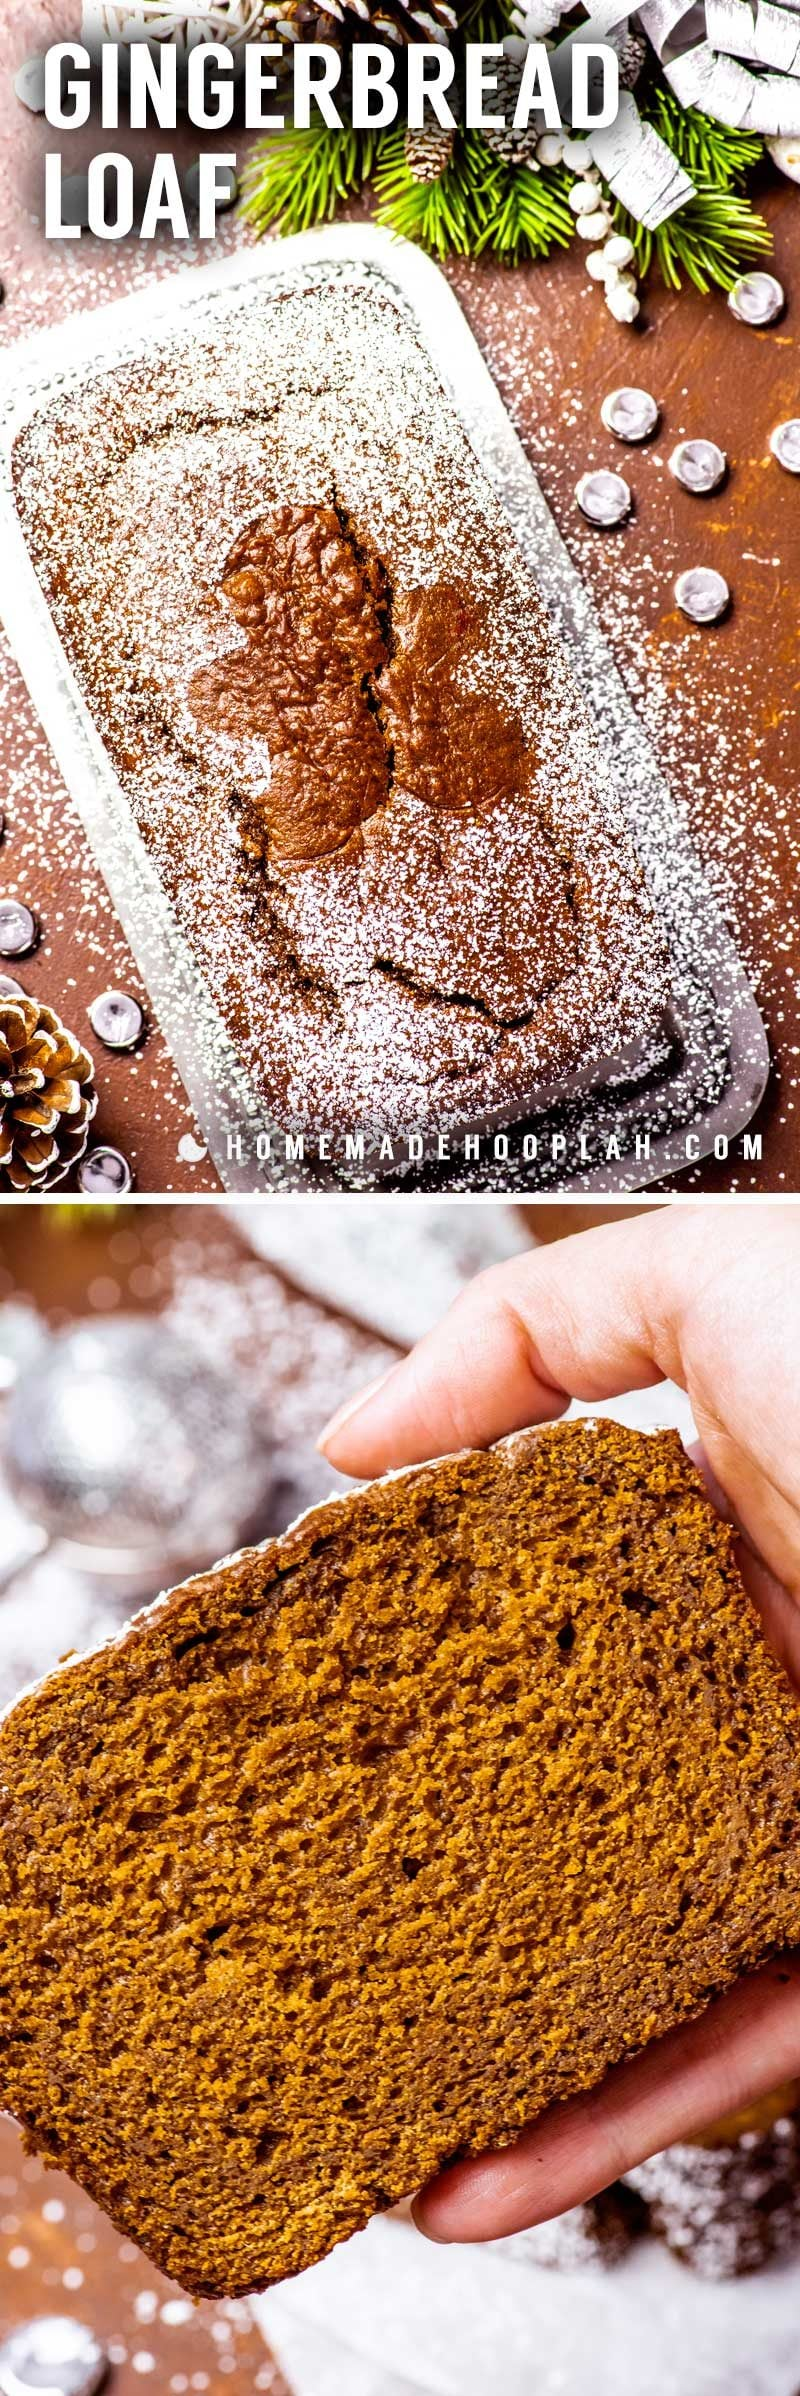 Bread that tastes like gingerbread cookies.